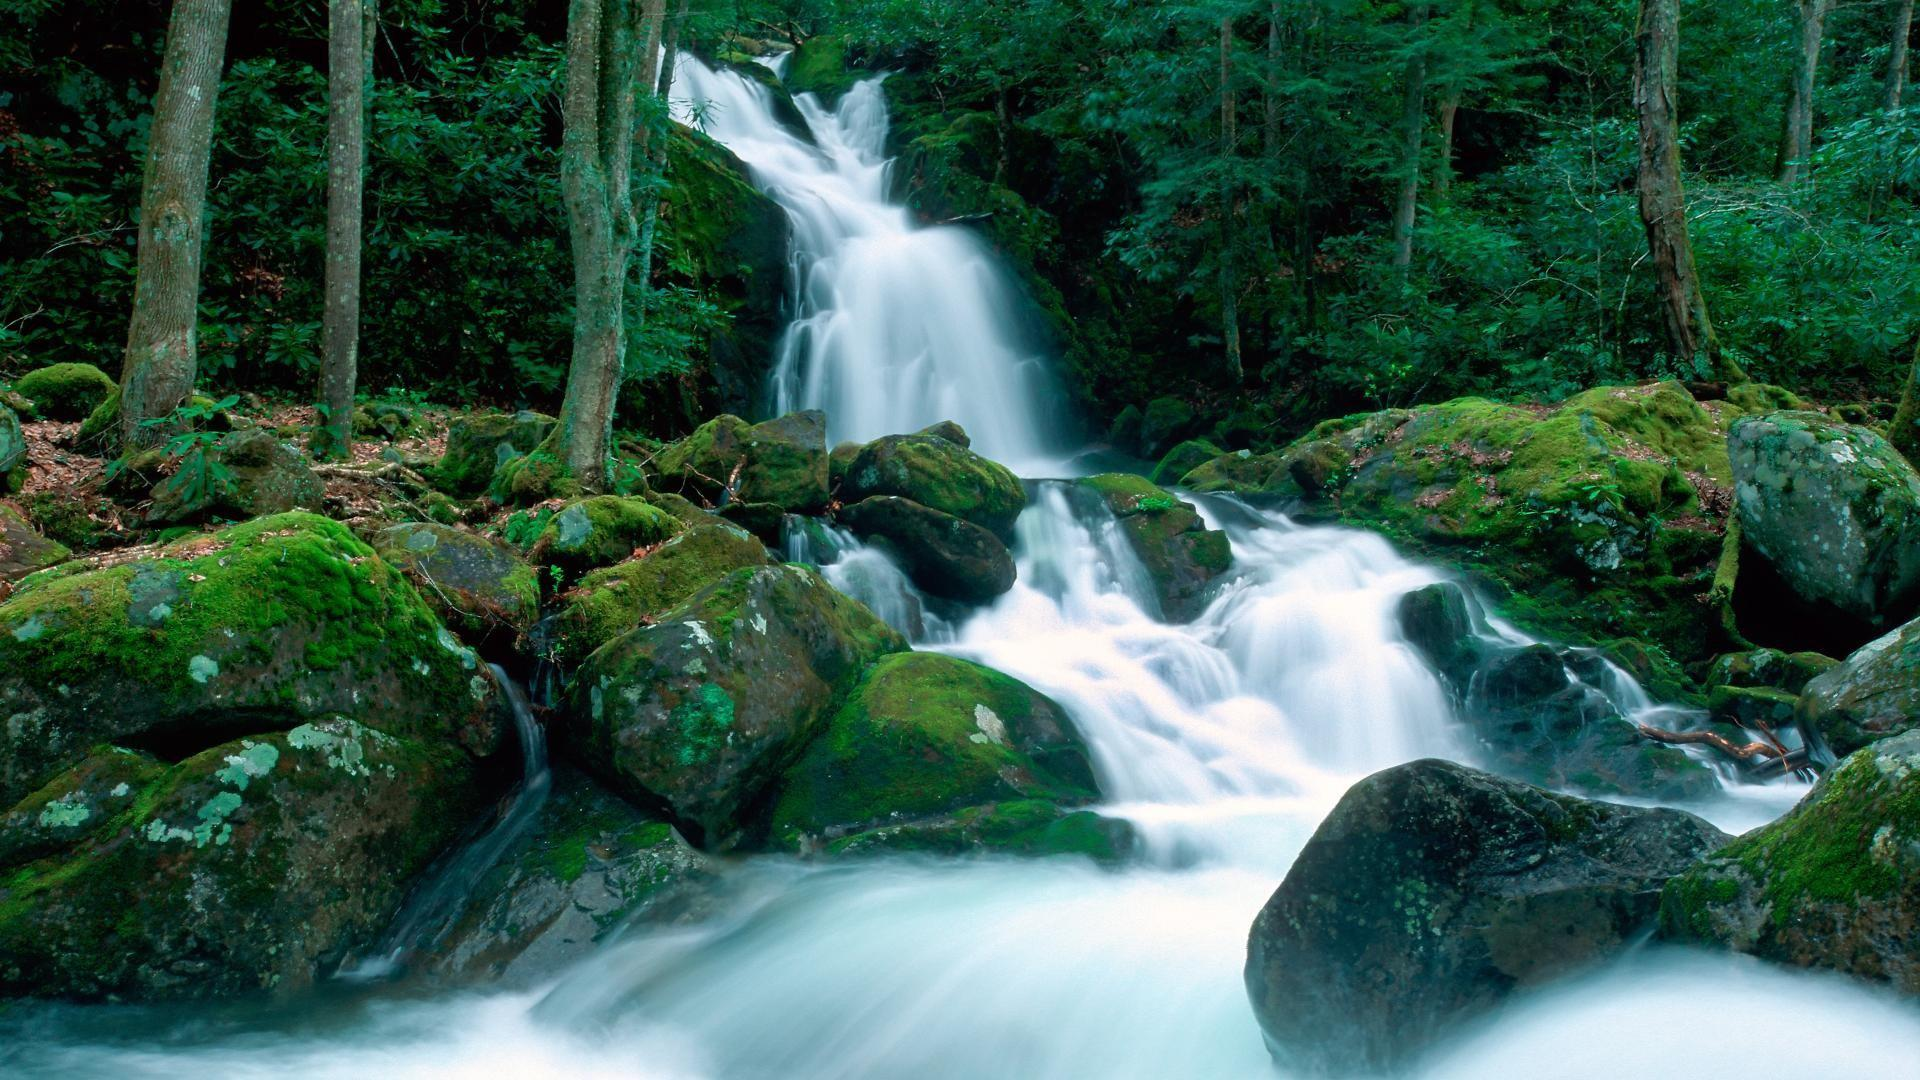 Background Wallpaper Hd Fall Fog Hd Landscapes Nature Falls Great Smoky Mountains Creek